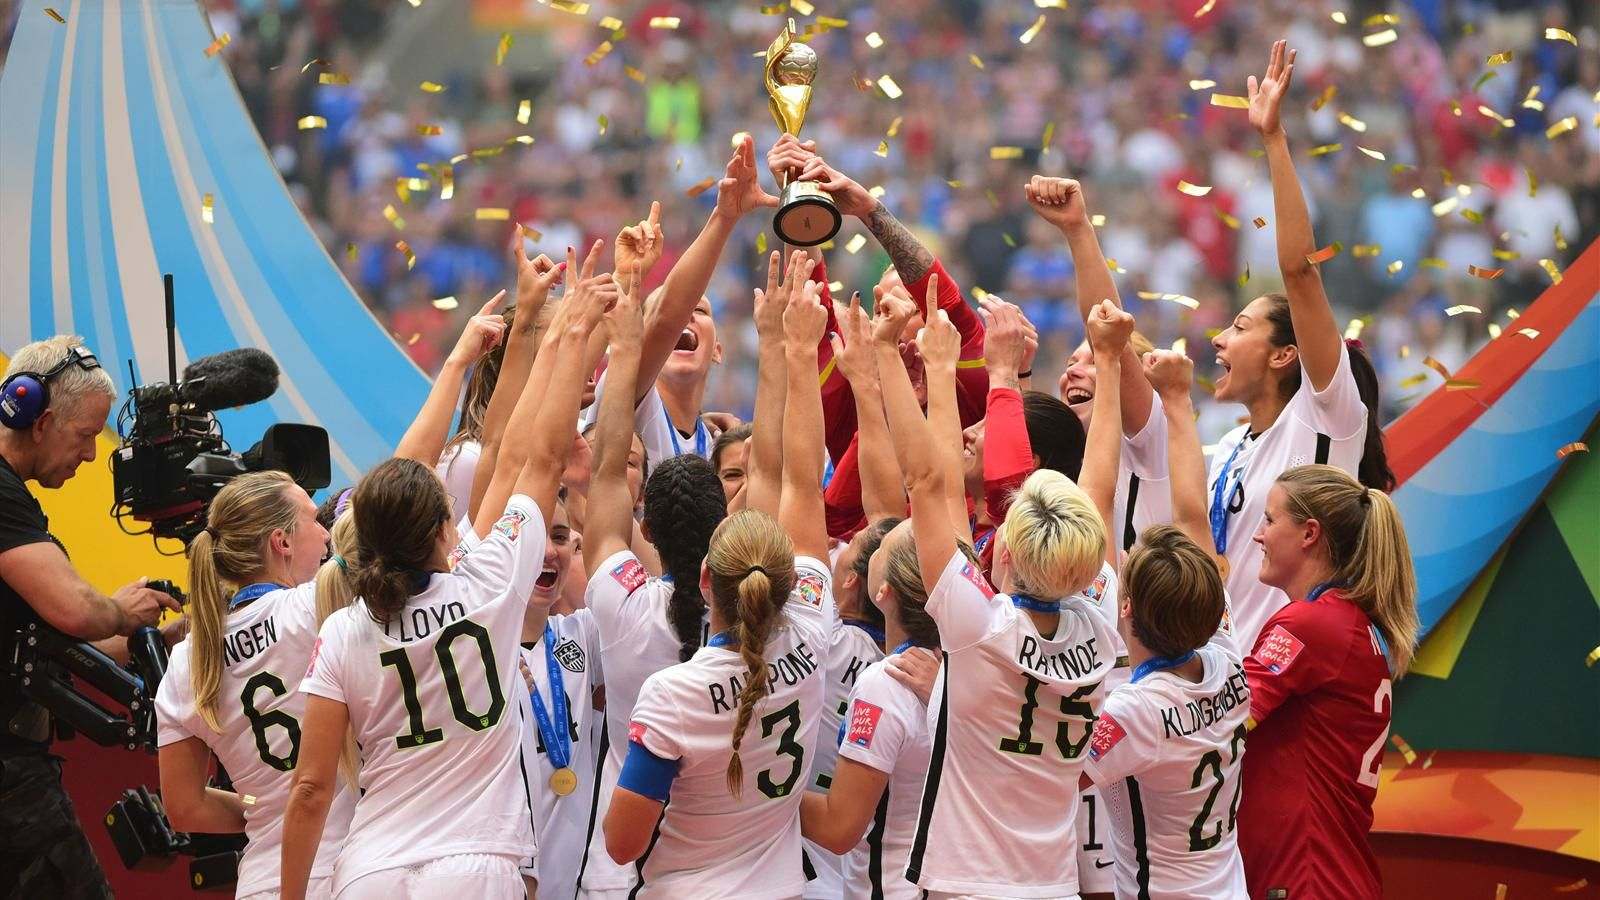 The uswnts triumph four years in the making the sports post uswnt publicscrutiny Image collections